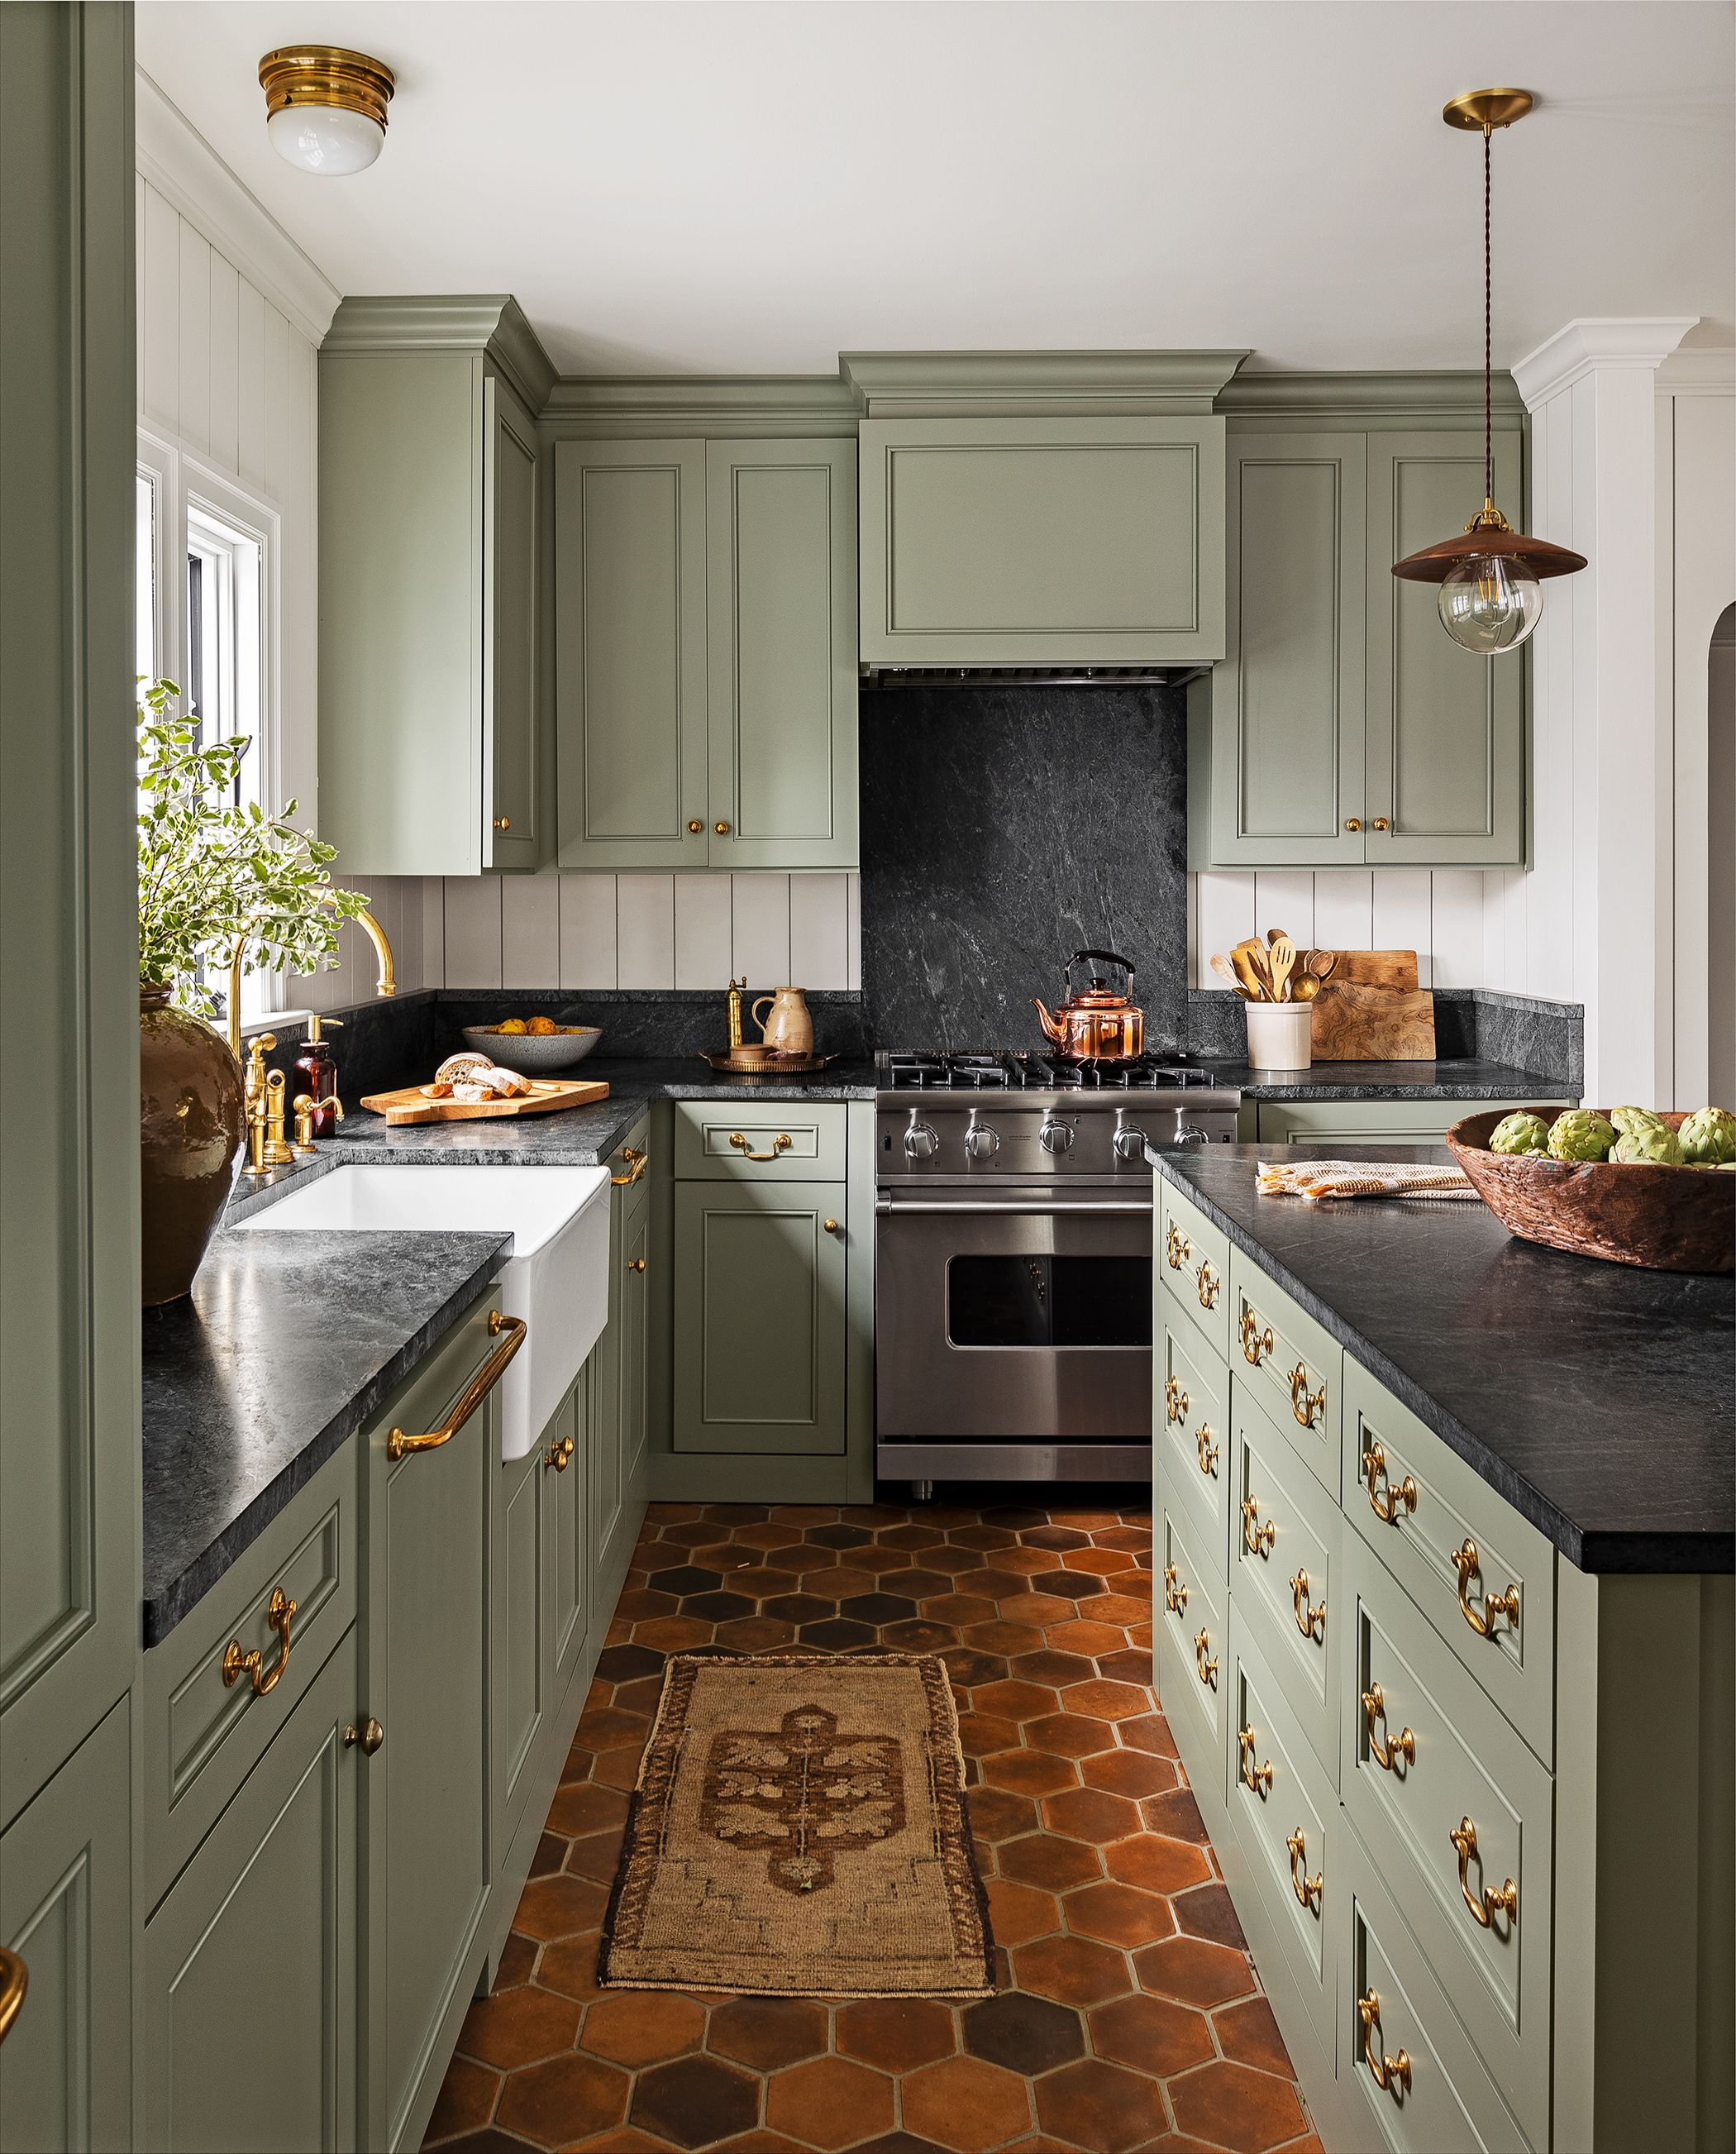 15 Best Green Kitchen Cabinet Ideas Top Green Paint Colors For Kitchens